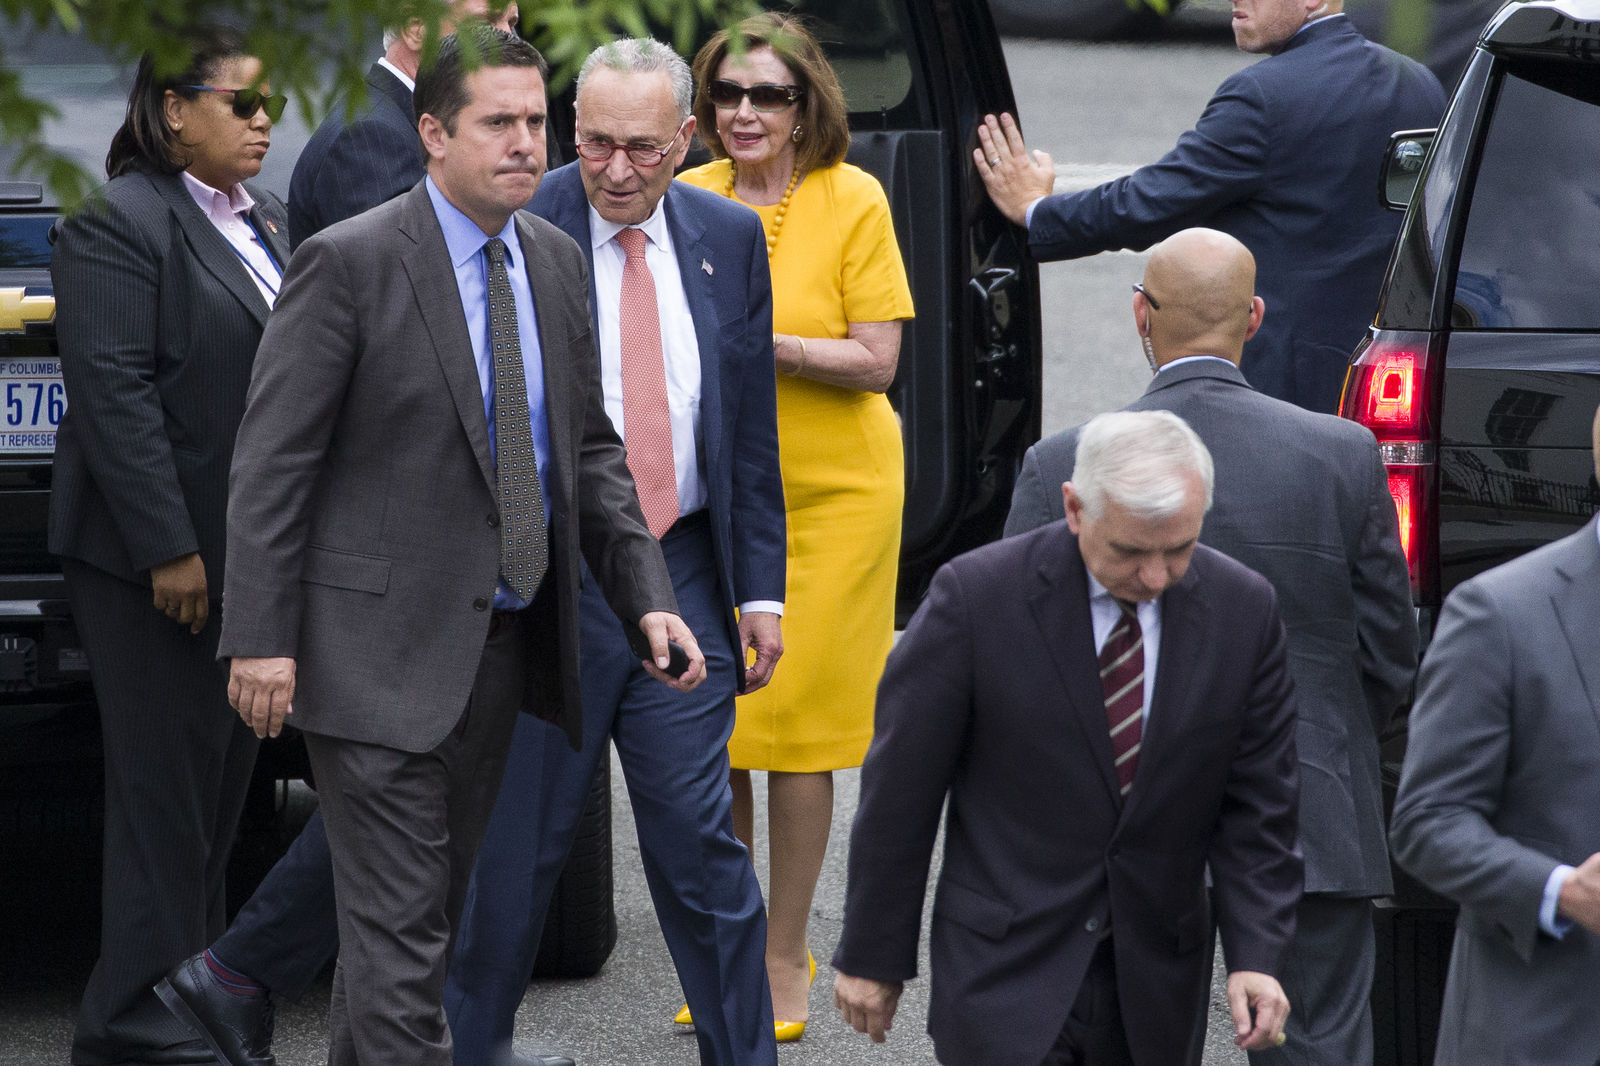 Rep. Devin Nunes, R-Calif., ranking member of the House Intelligence Committee, second from left, Senate Minority Leader Chuck Schumer of N.Y., House Speaker Nancy Pelosi of Calif., Sen. Jack Reed, D-R.I., foreground, and others depart after a meeting with President Donald Trump about Iran at the White House, Thursday, June 20, 2019, in Washington. (AP Photo/Alex Brandon)